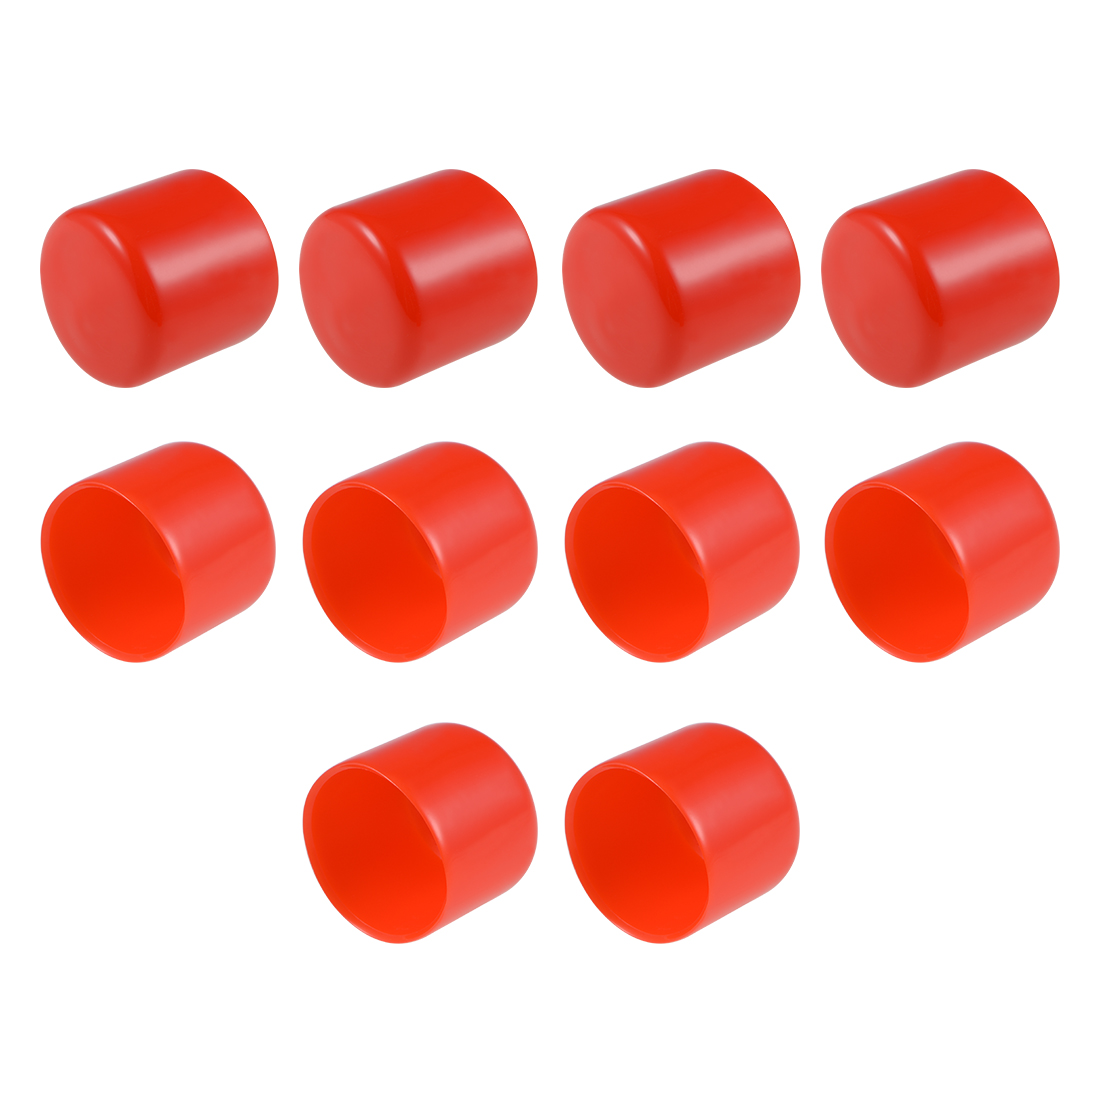 Screw Thread Protector, 36mm ID Round End Cap Cover Red Tube Caps 10pcs